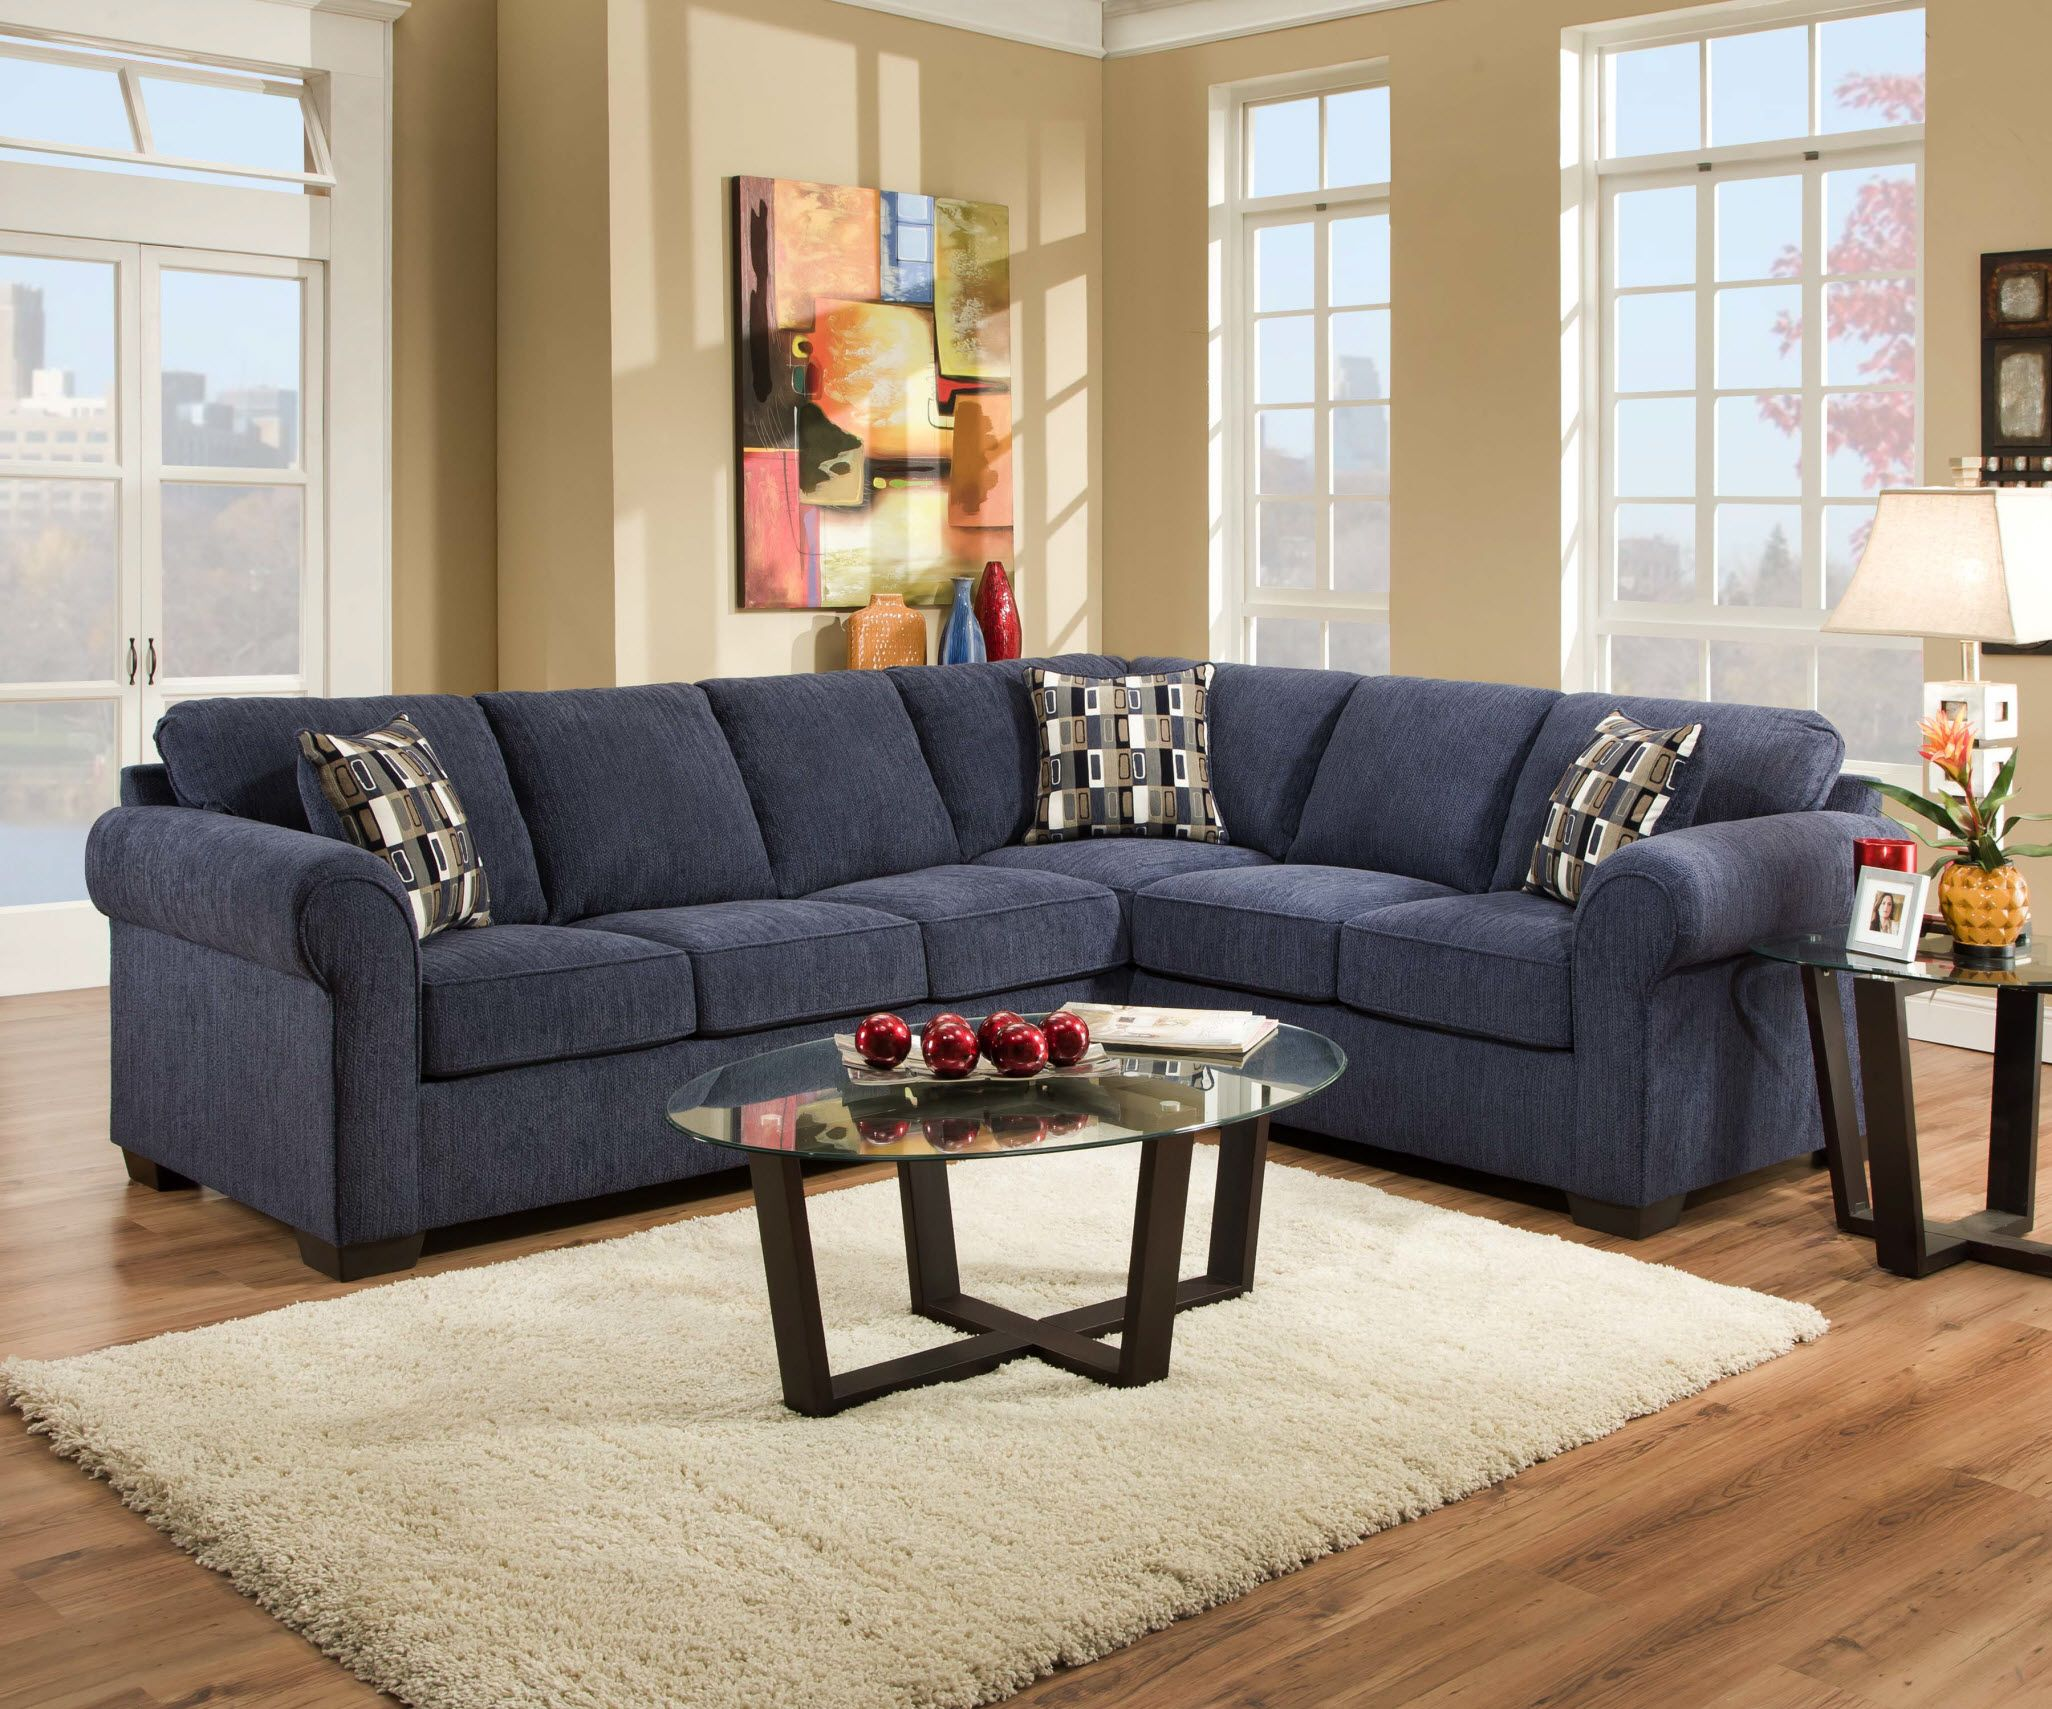 Best Fun Living Room Ideas Living Room In Demand Sectional L 400 x 300